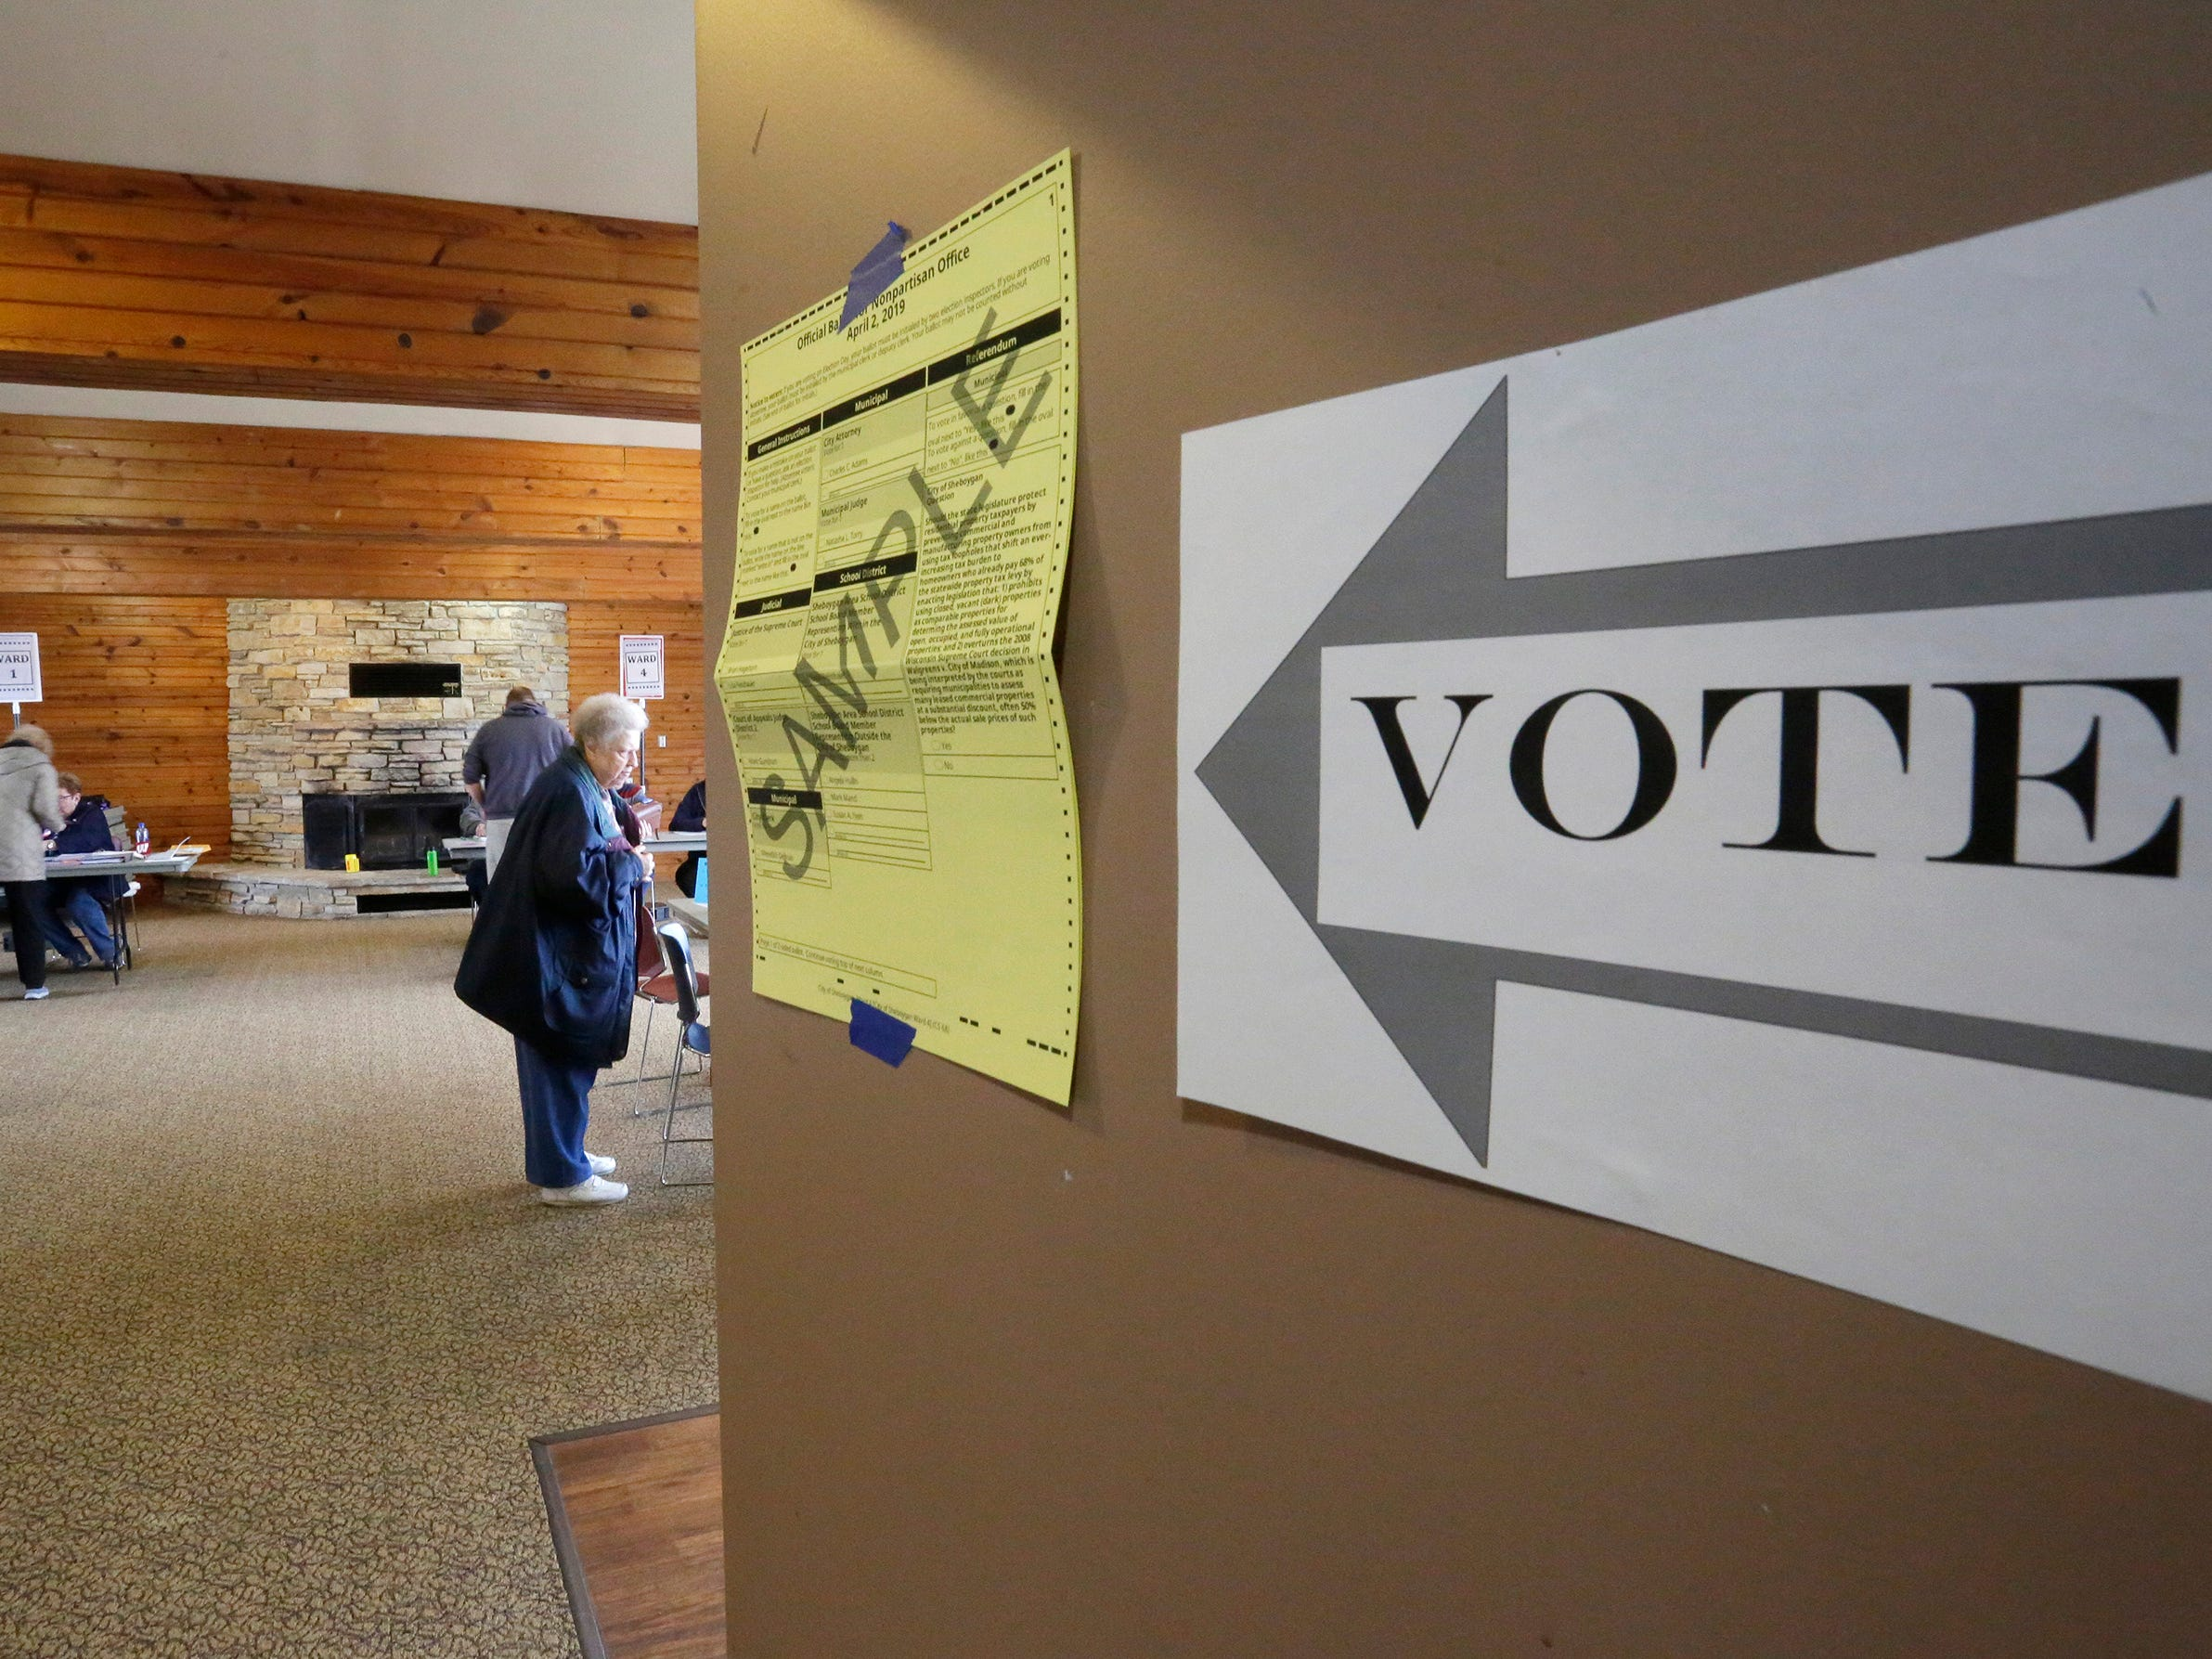 A sign points to voting at the Quarryview Center, Tuesday, April 2, 2019, in Sheboygan, Wis.